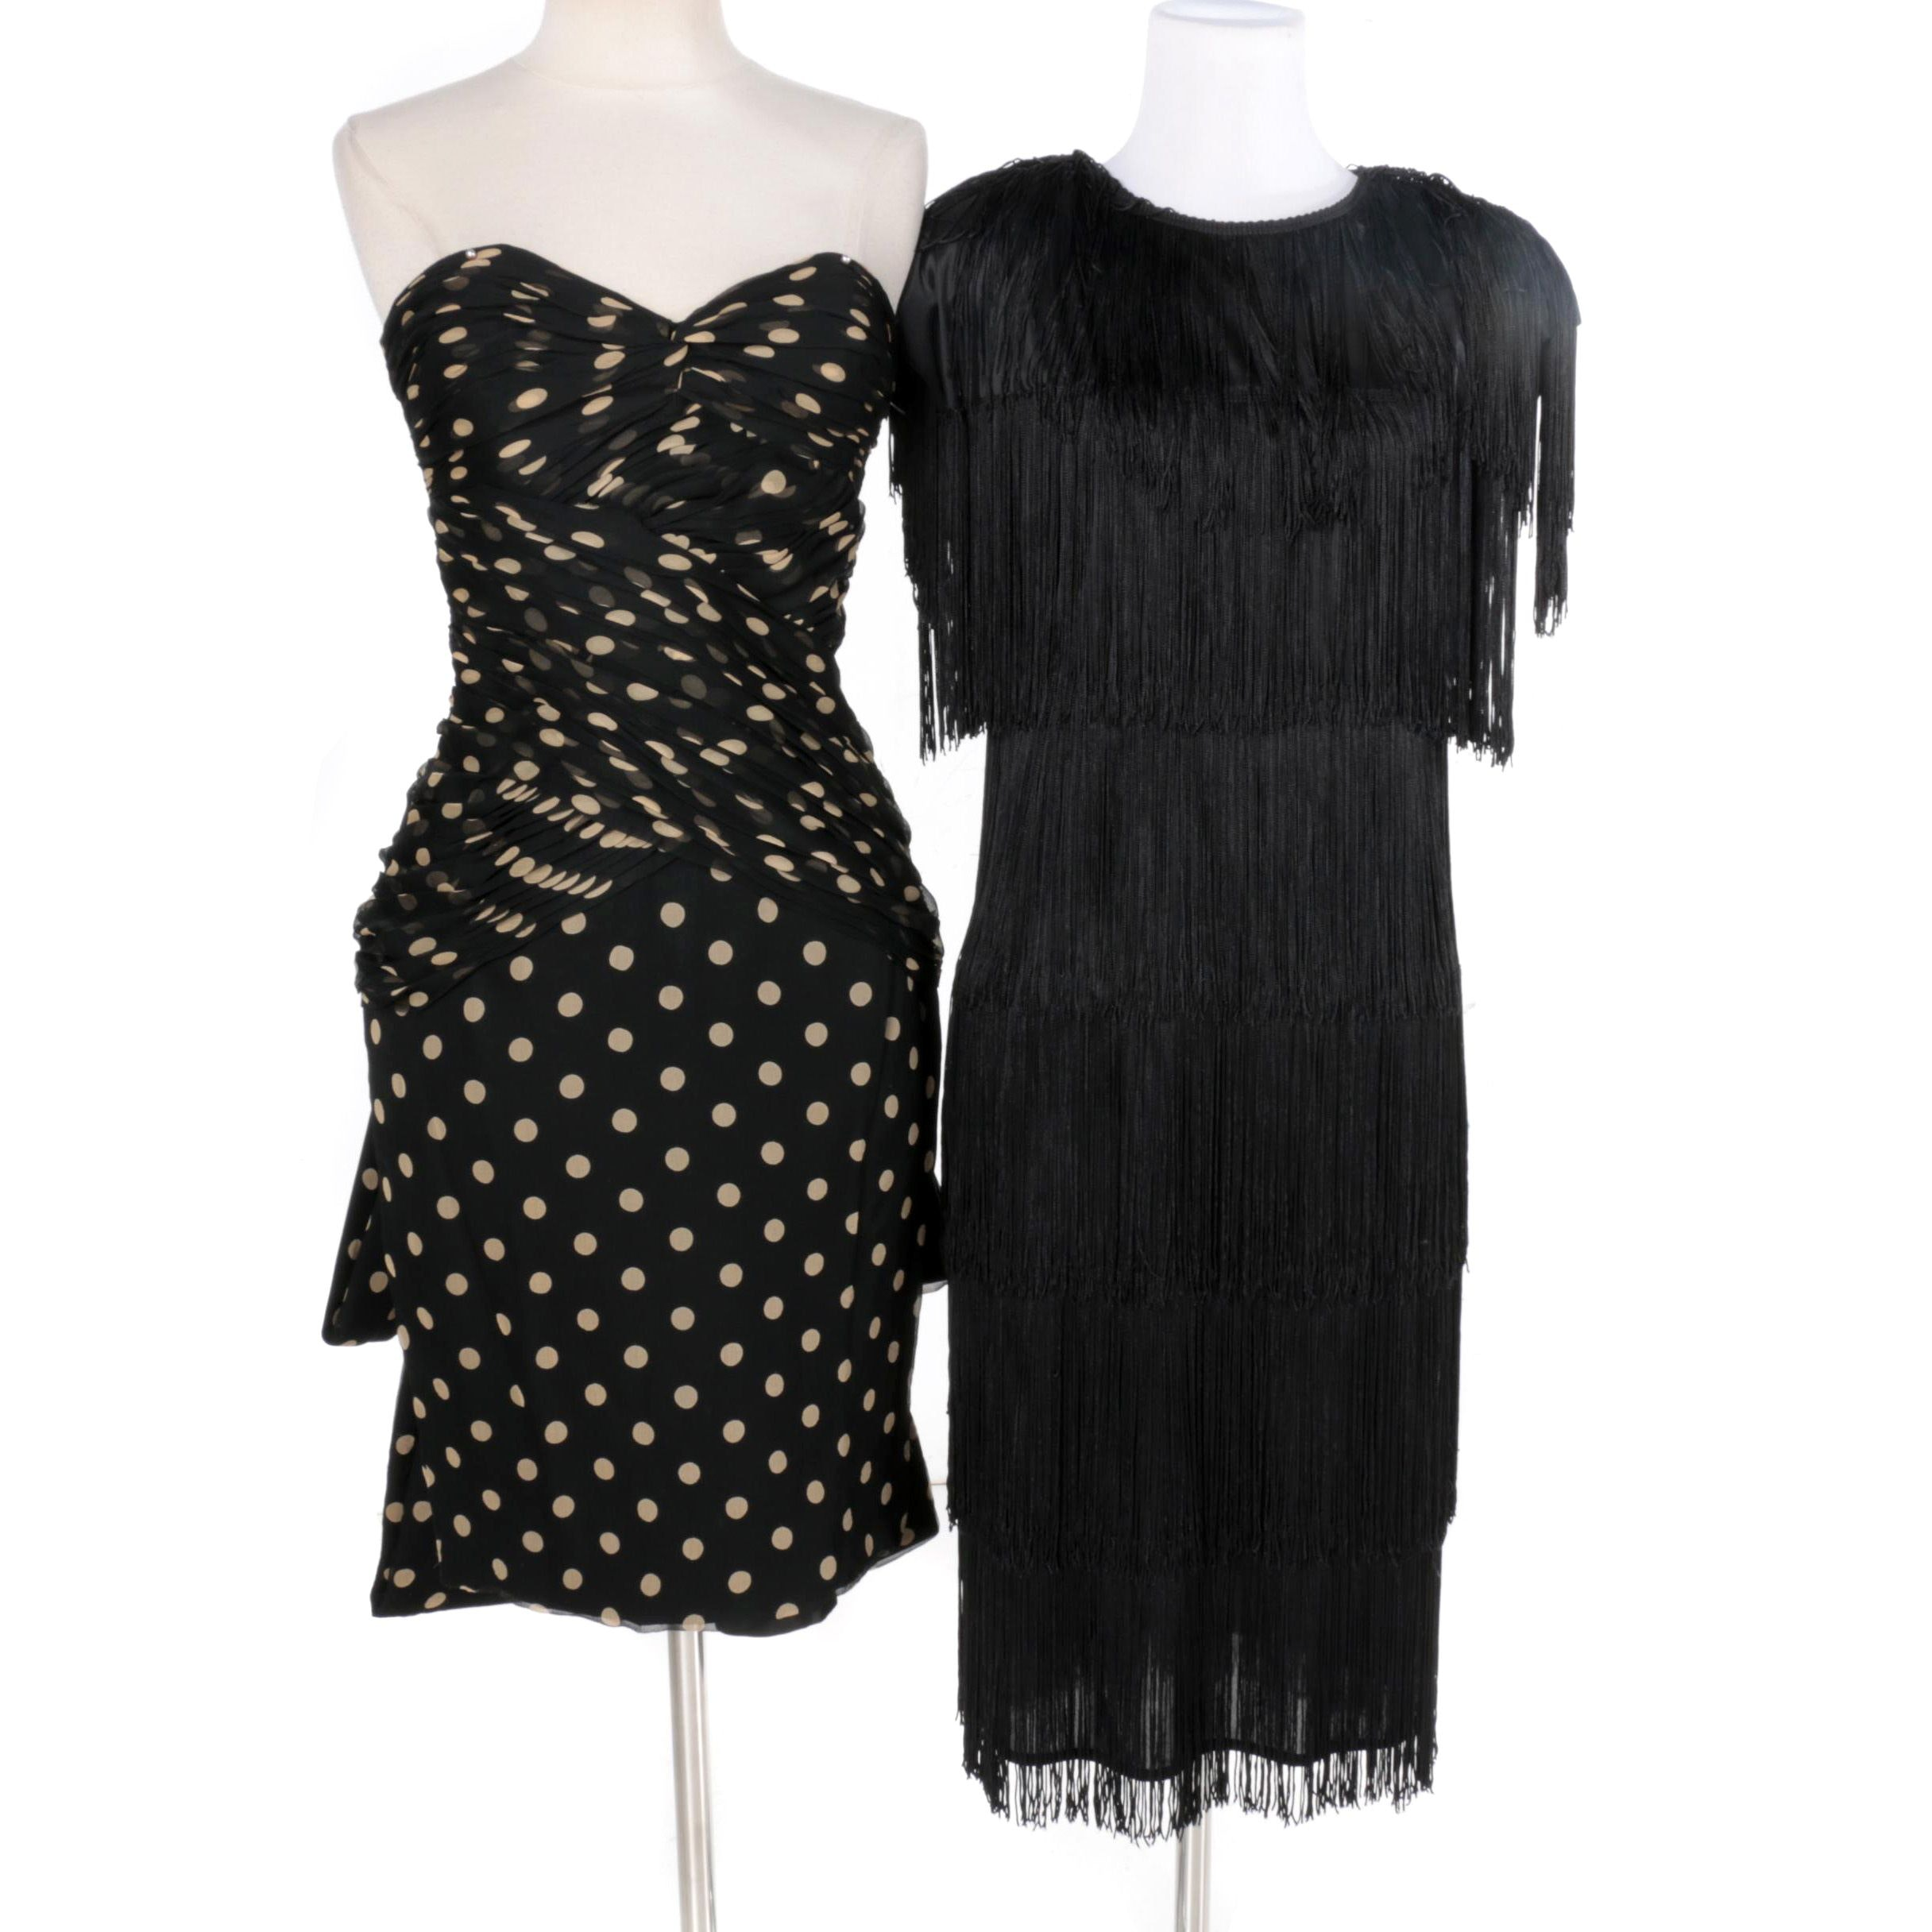 Women's Black Cocktail Dresses Including Vicki Tiel